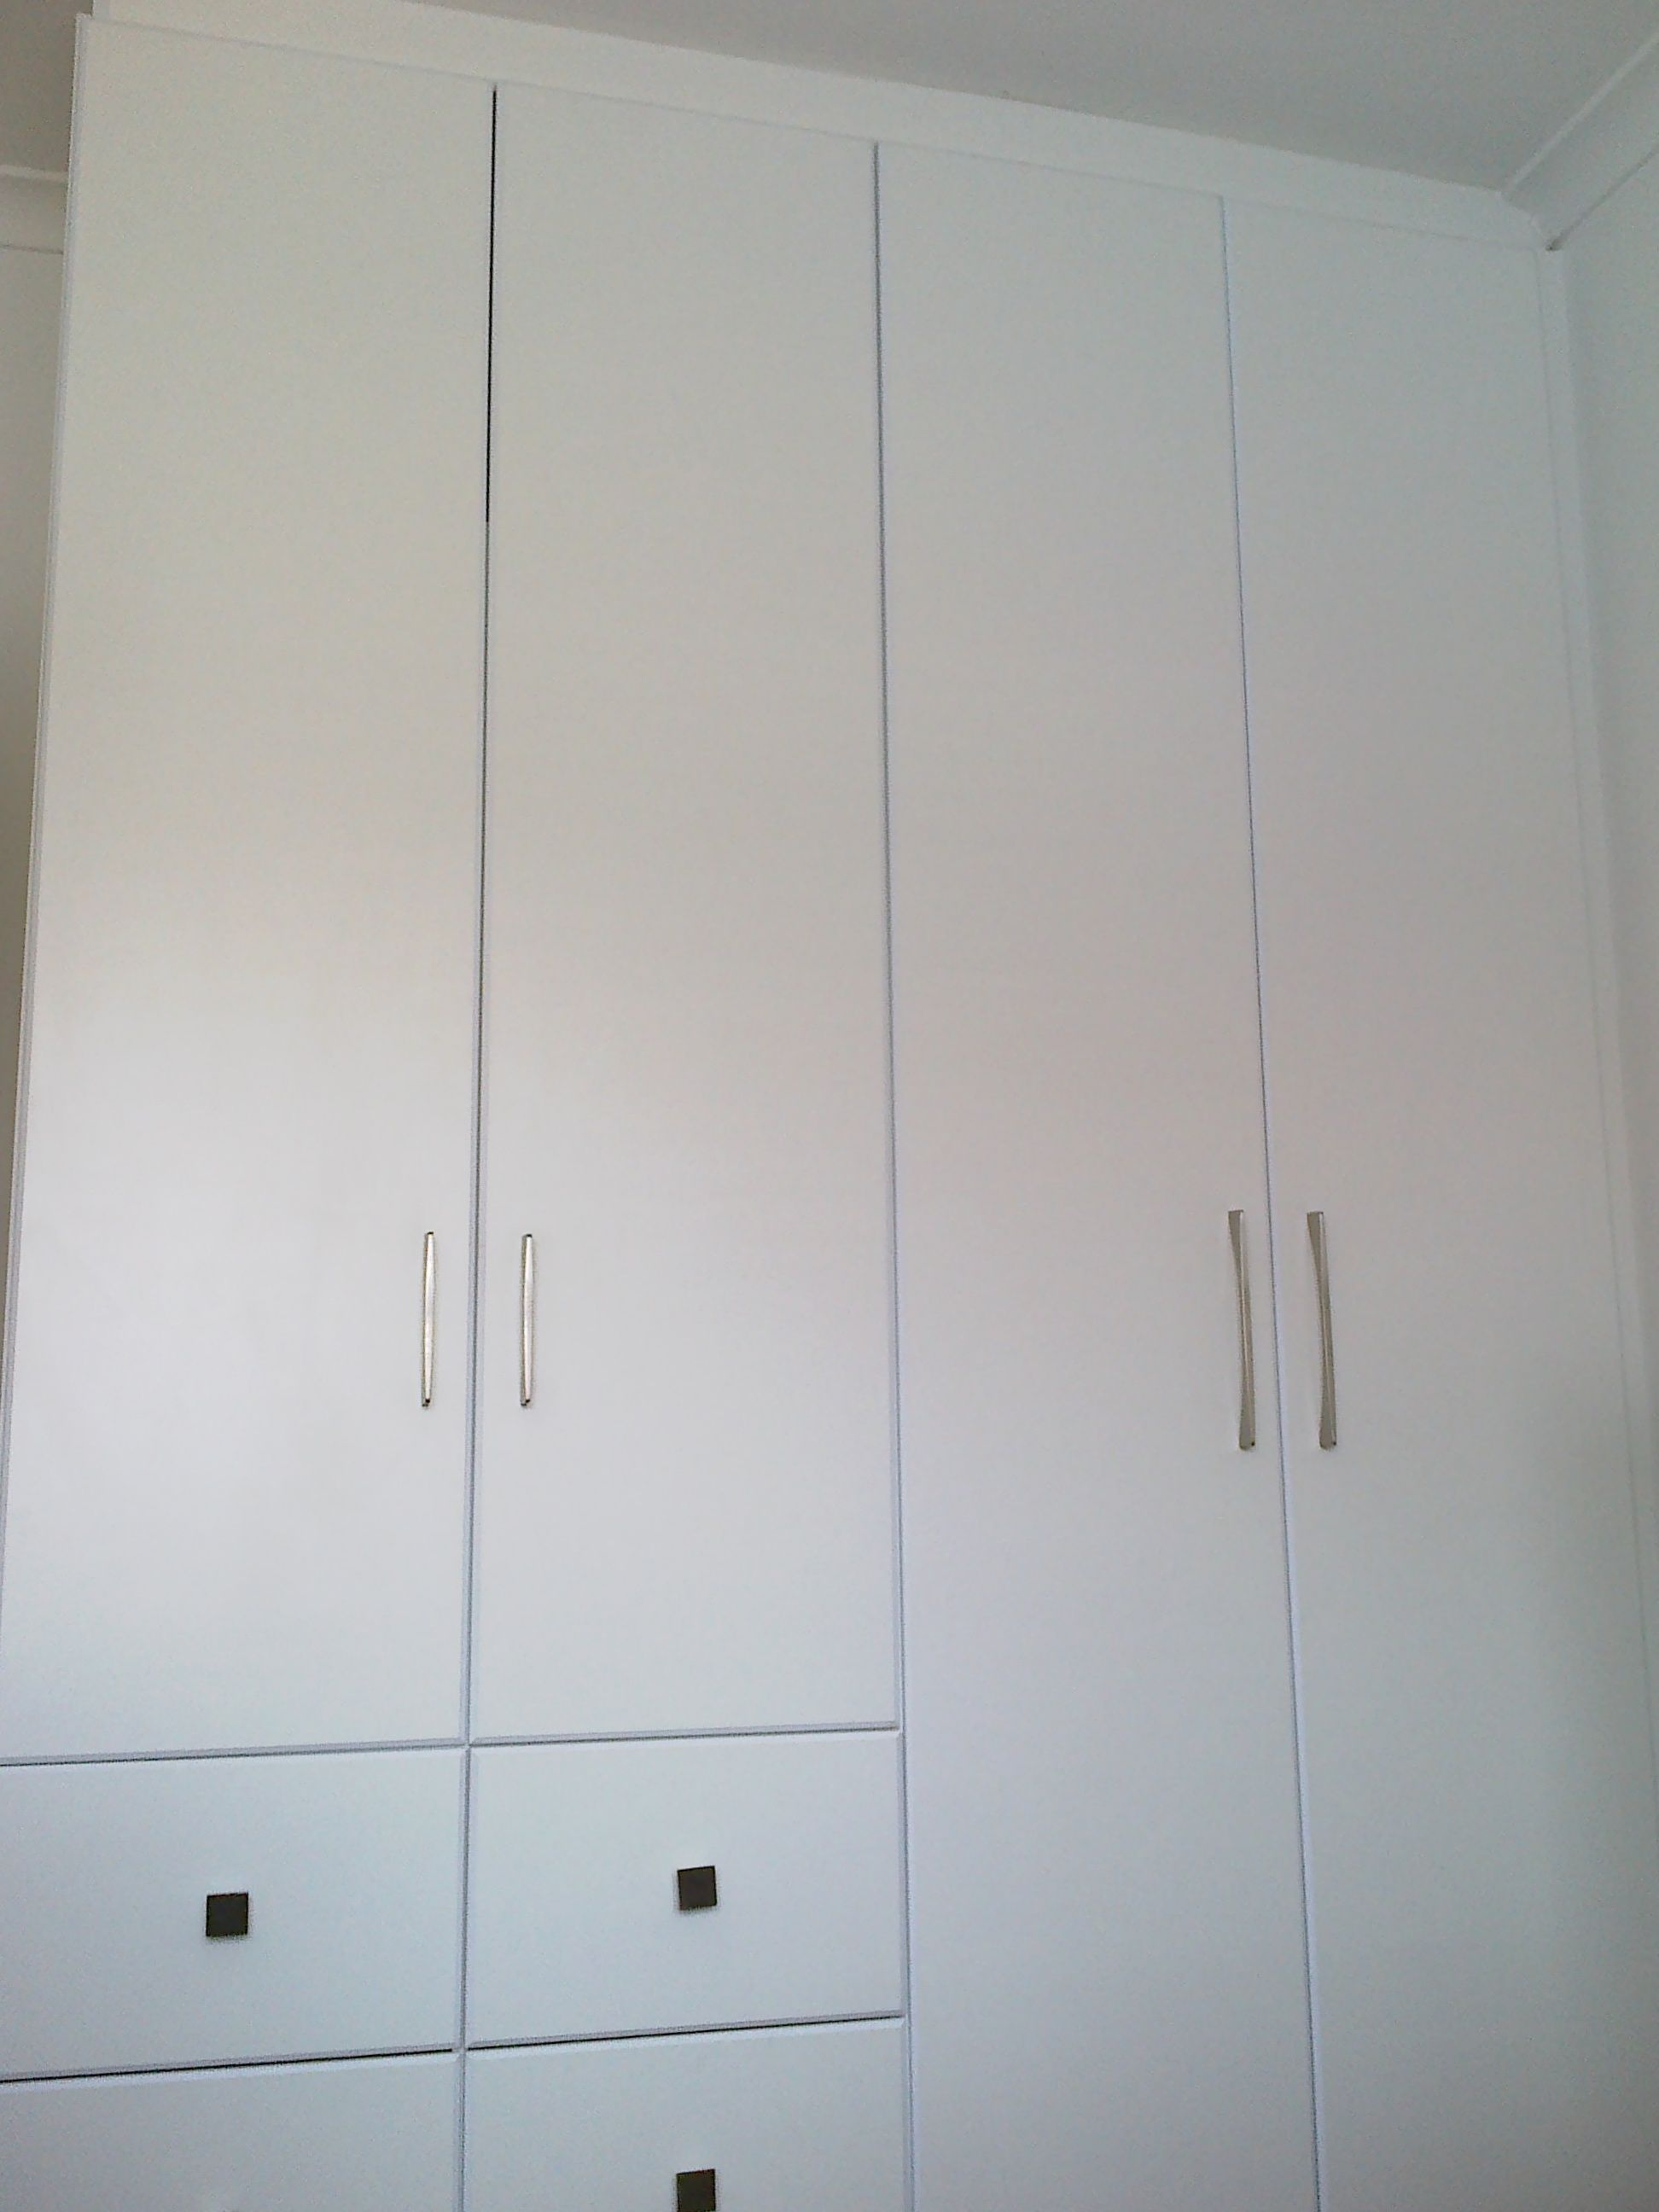 Created By Dimension Cabinets Four Door Bedroom Cupboard In White Melamine With Hanging And Shelving Cupboard Modern Kitchen Cabinet Design Melamine Shelving